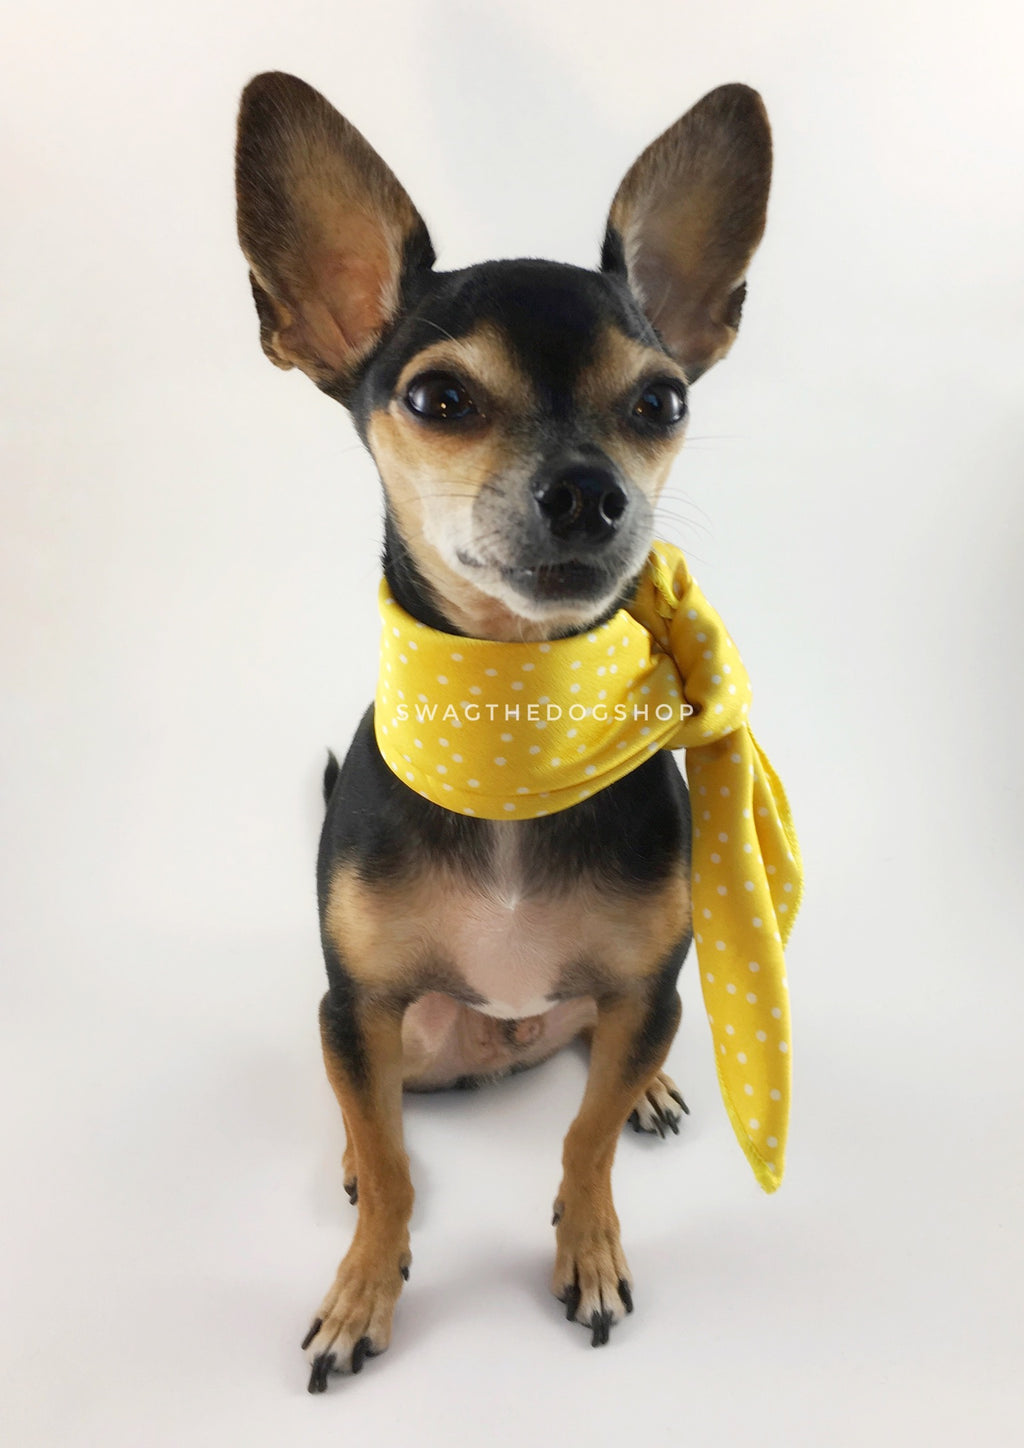 Polka Itty Bitty Sunny Yellow Swagdana Scarf - Full Frontal View of Cute Chihuahua Wearing Swagdana Scarf as Neckerchief. Dog Bandana. Dog Scarf.